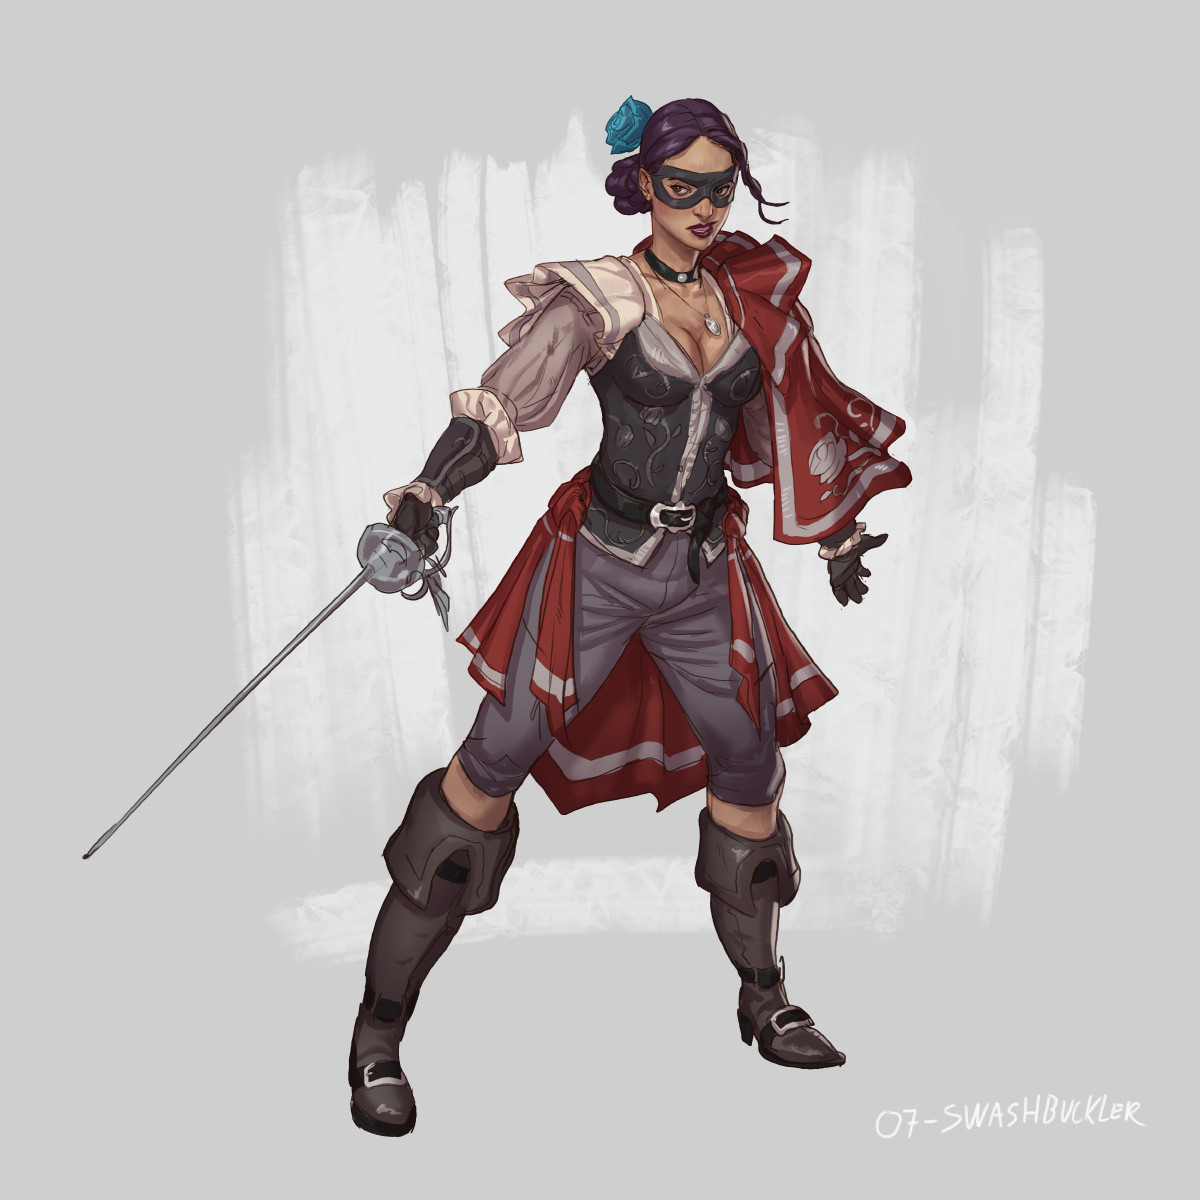 RPG Class day 07: swashbuckler